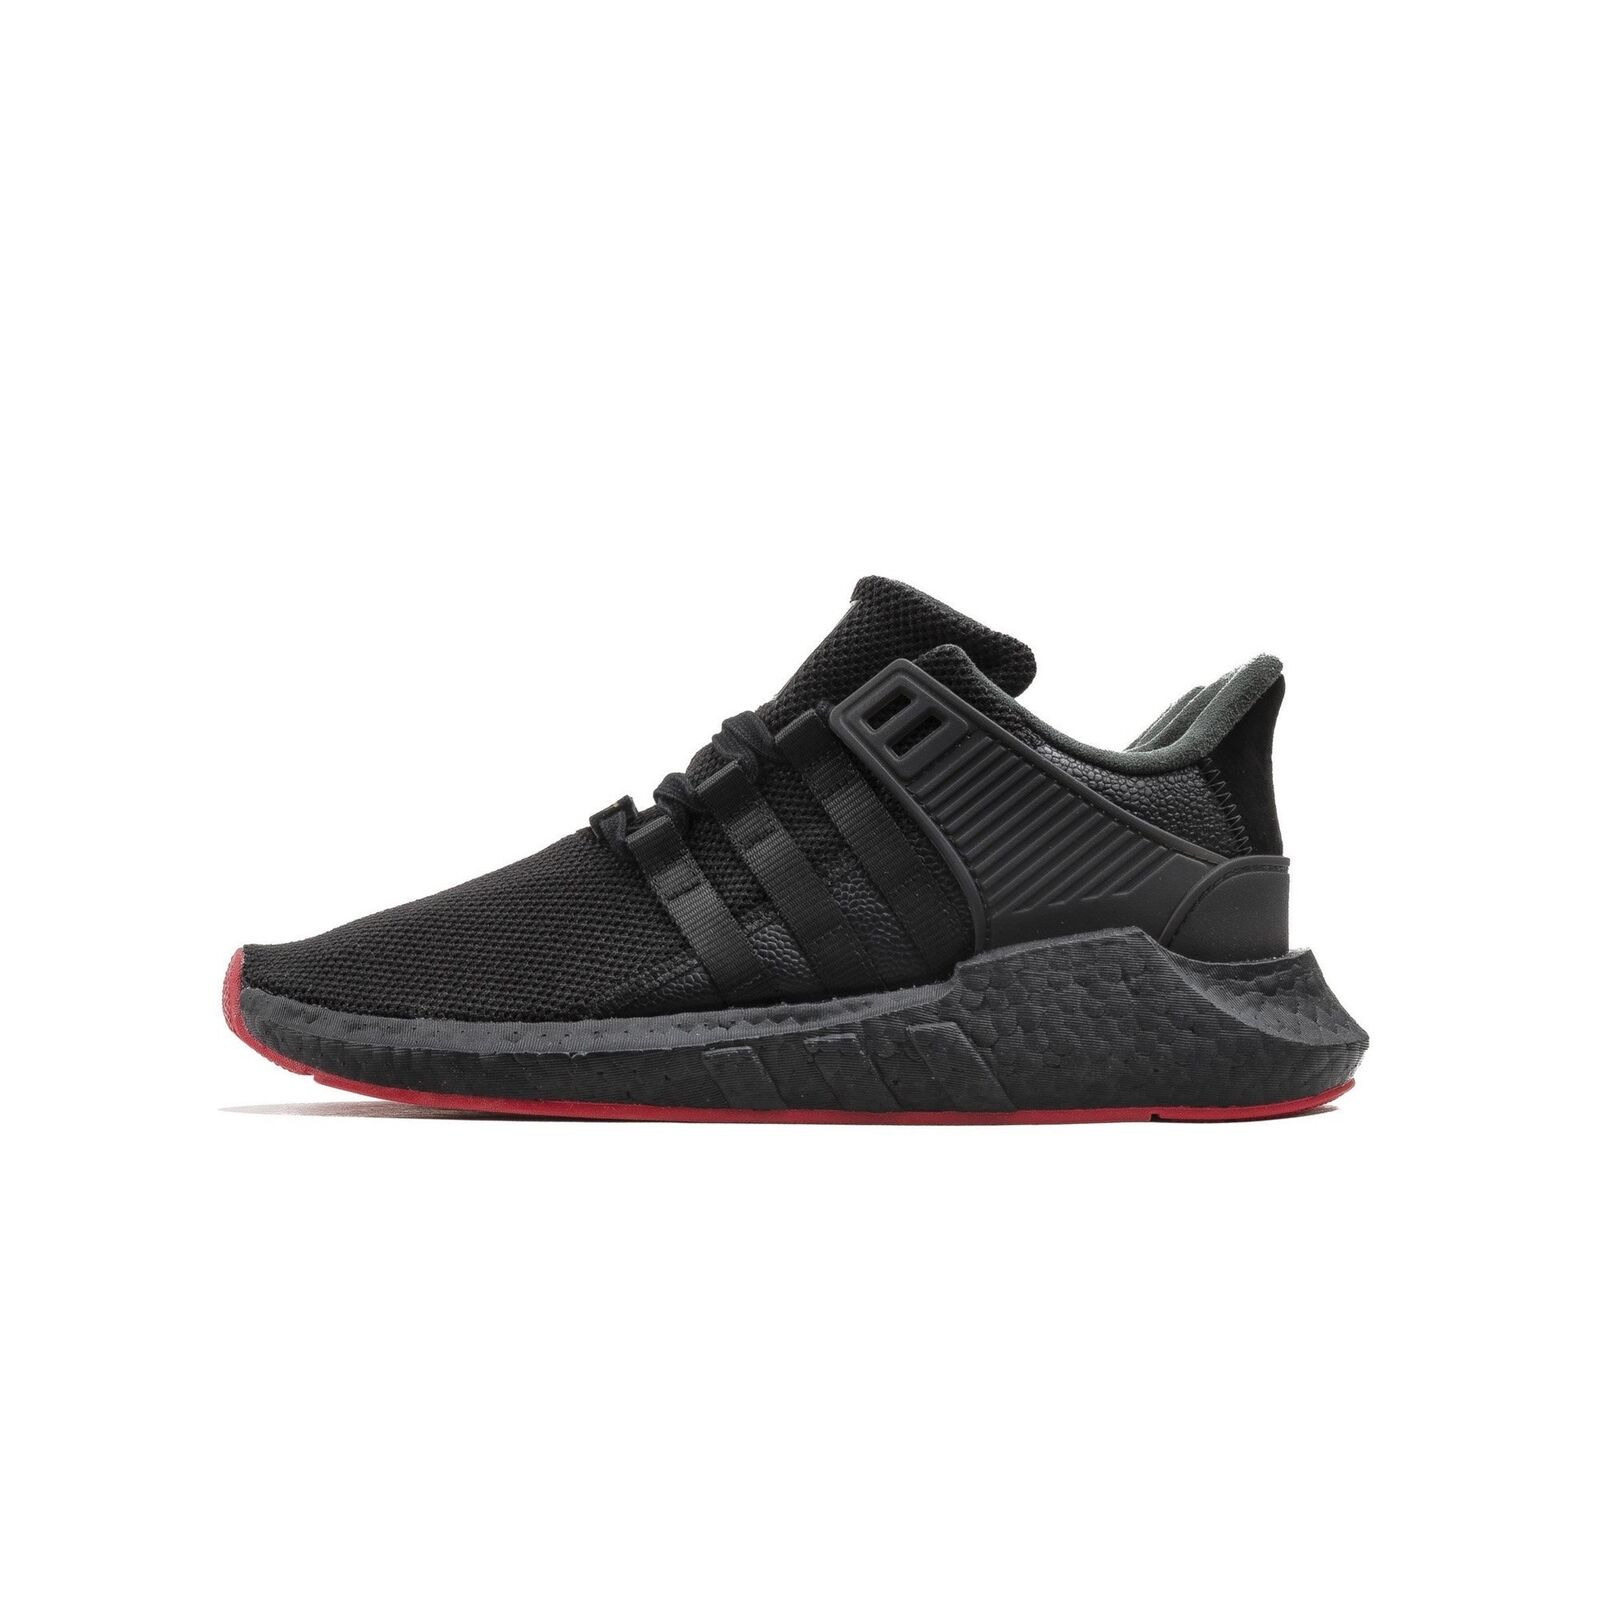 Mens Adidas EQT Equipment Support 93/17 Red Carpet Black CQ2394